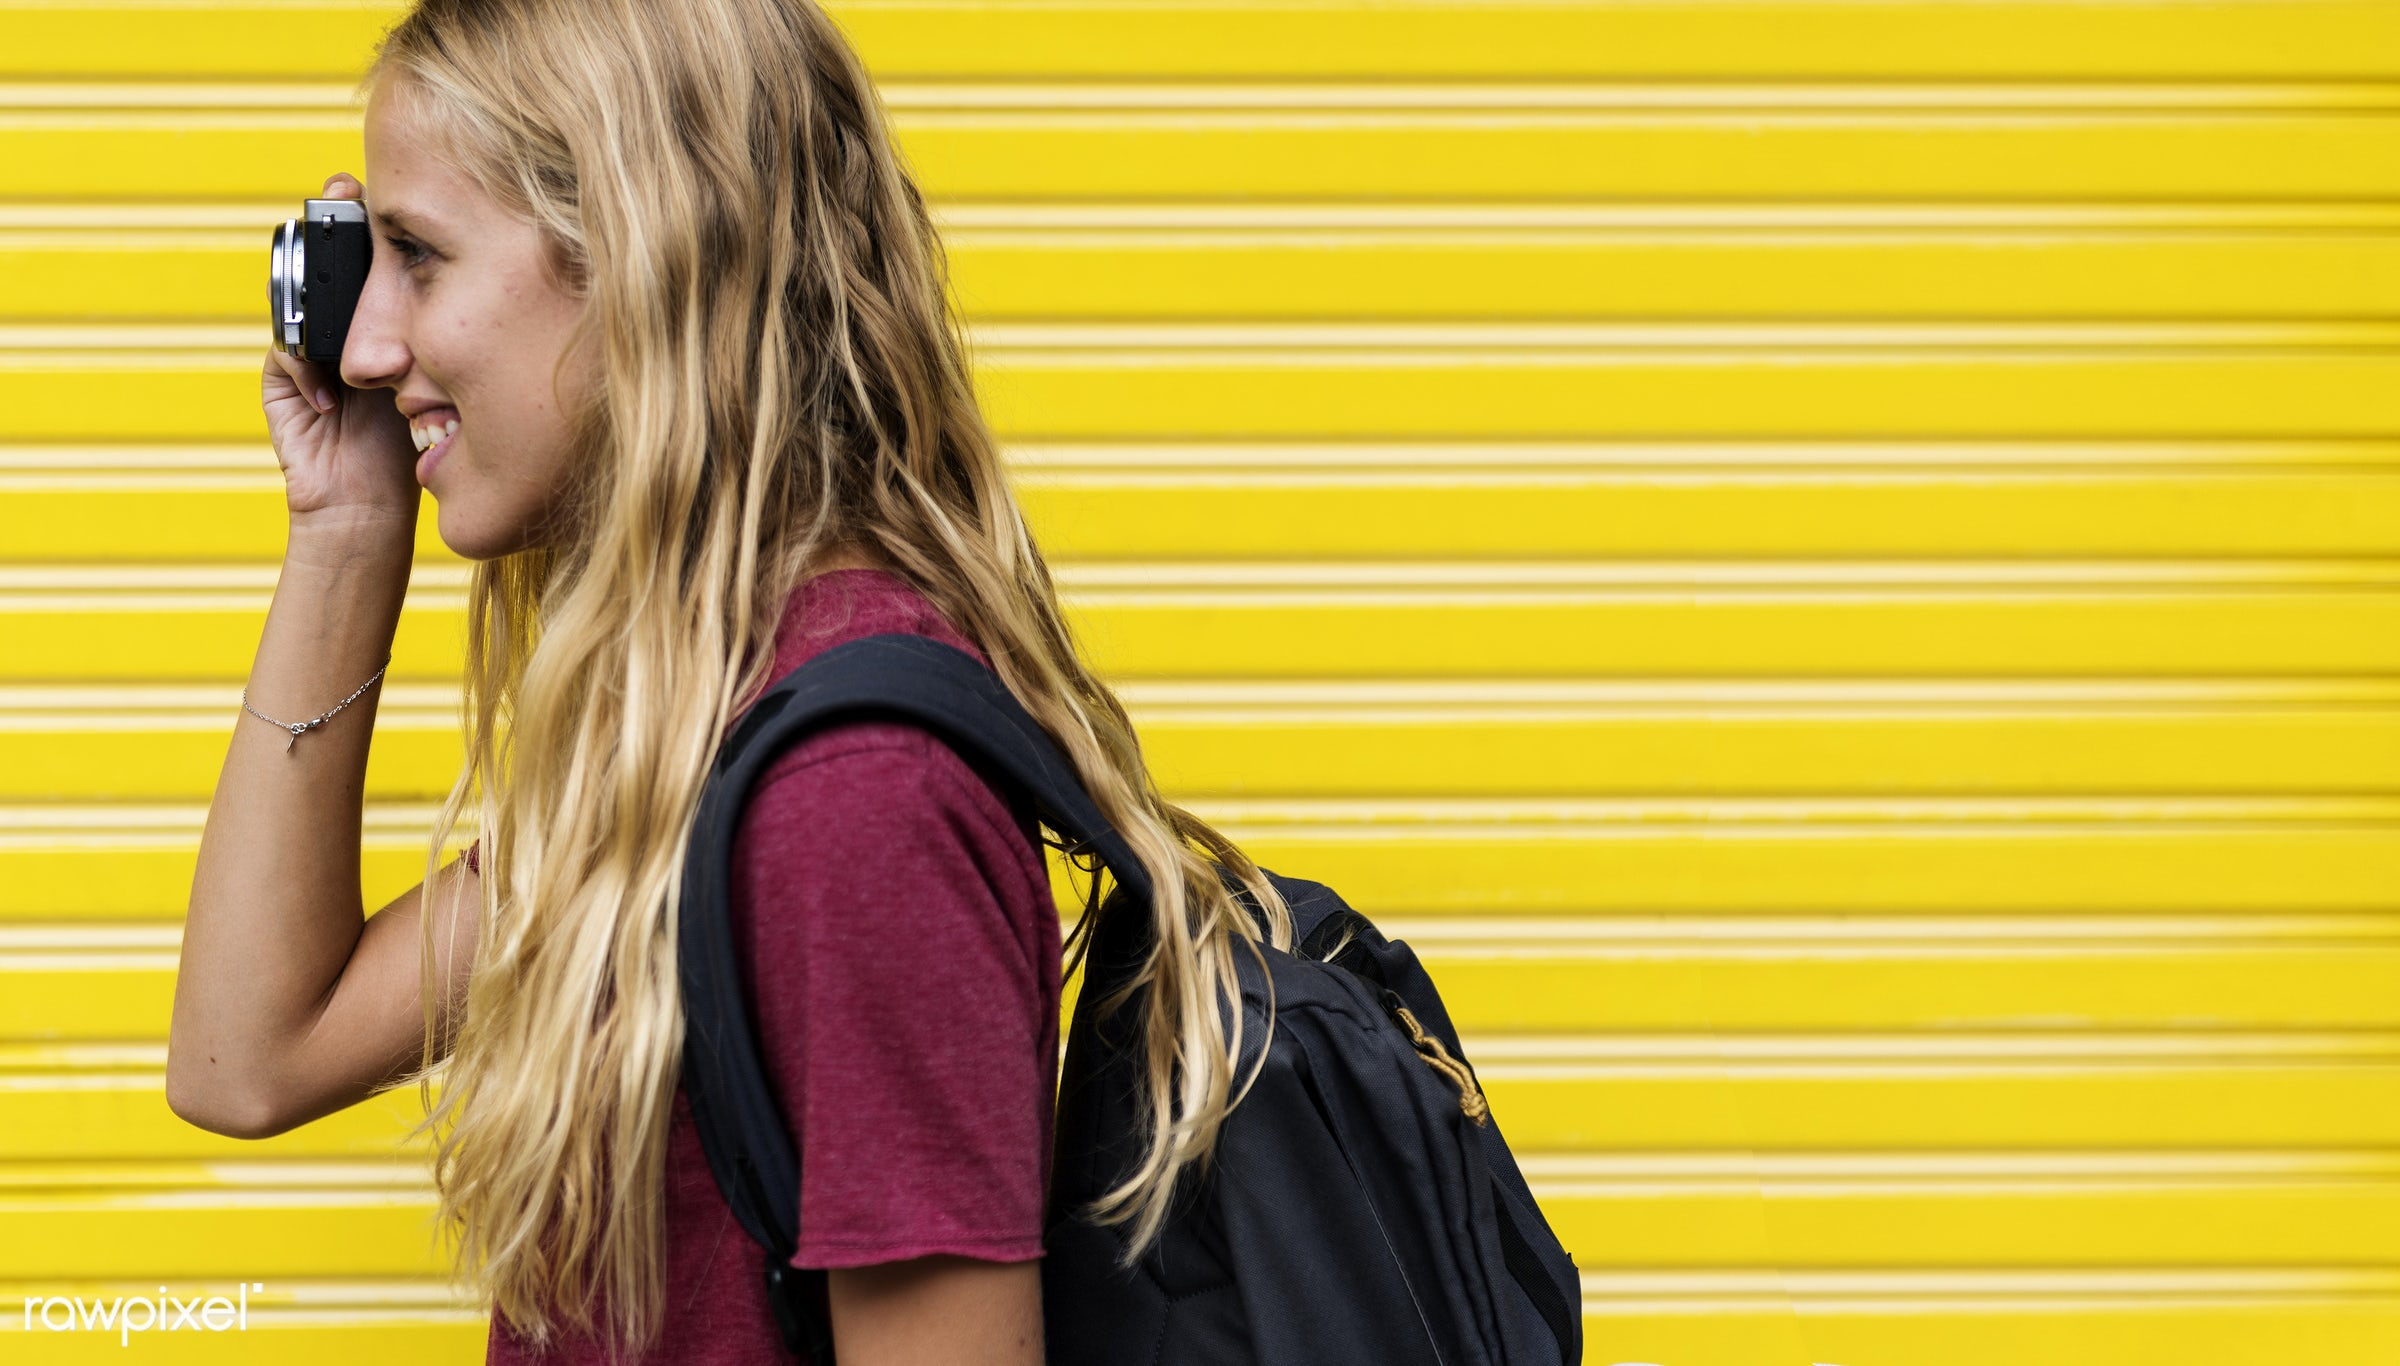 side view, backpackers, pictures, travel, yellow, people, caucasian, wanderlust, girl, woman, backpack, trip, smile,...